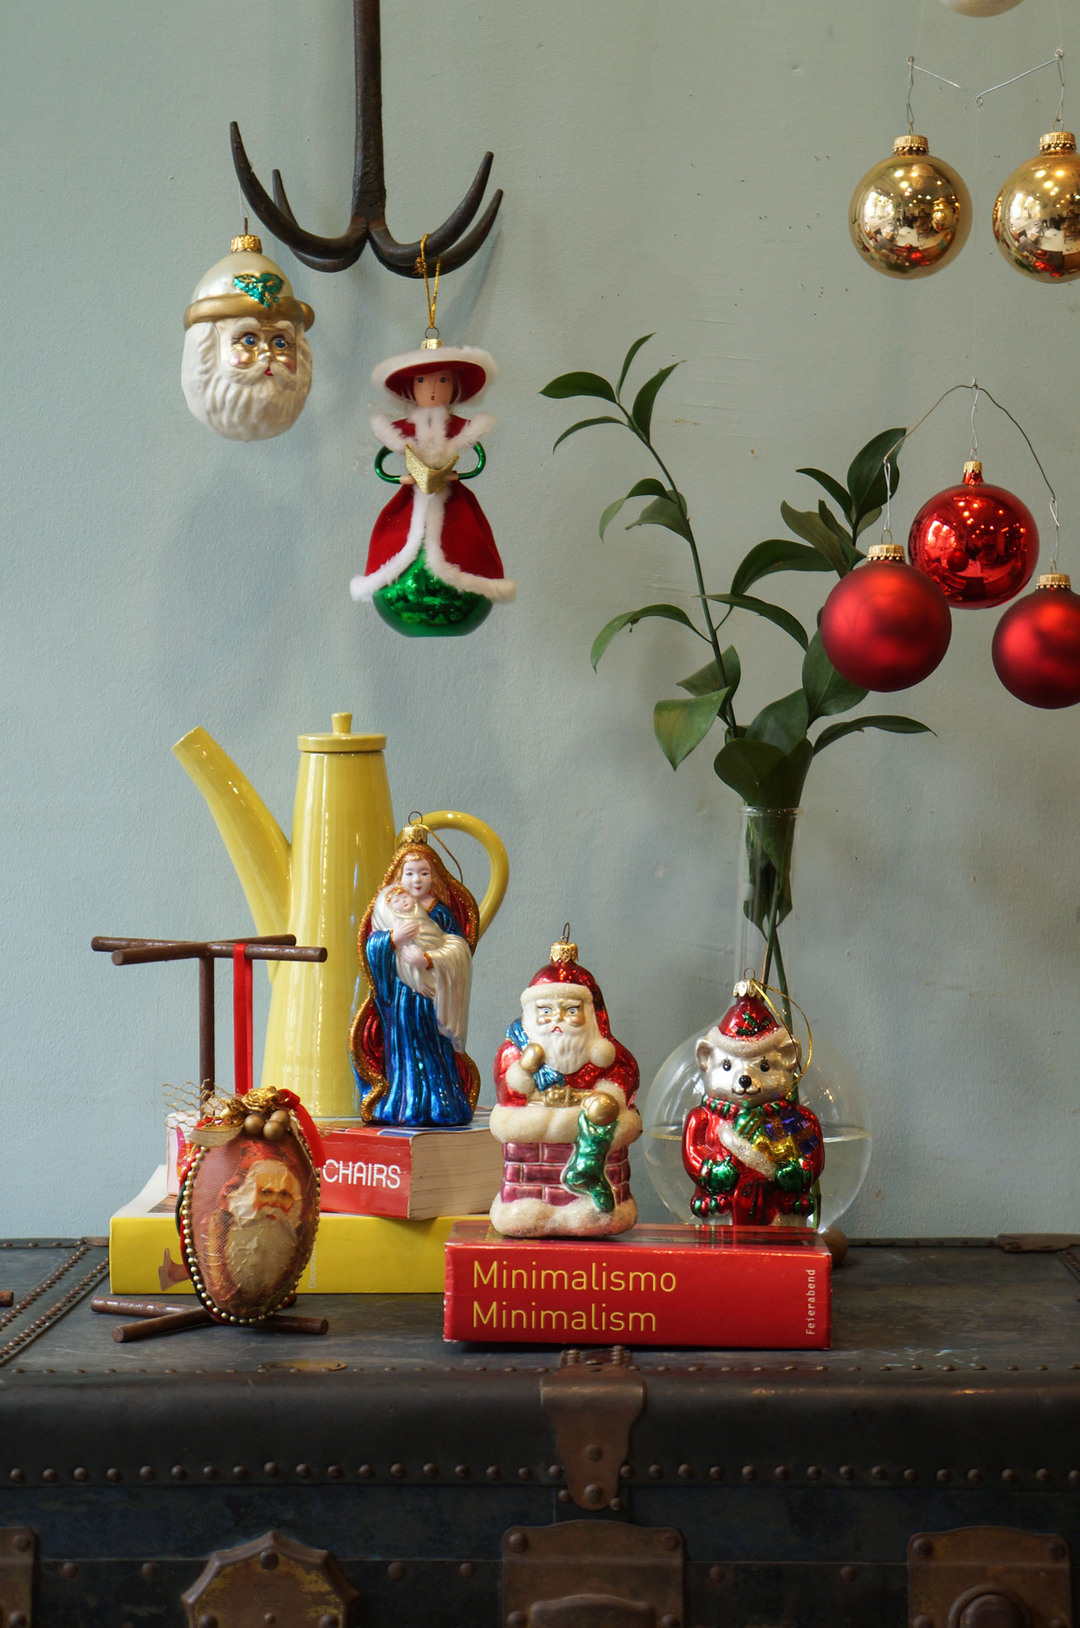 Vintage Blown Glass Christmas Ornament/ヴィンテージ クリスマス オーナメント 吹きガラス レトロ